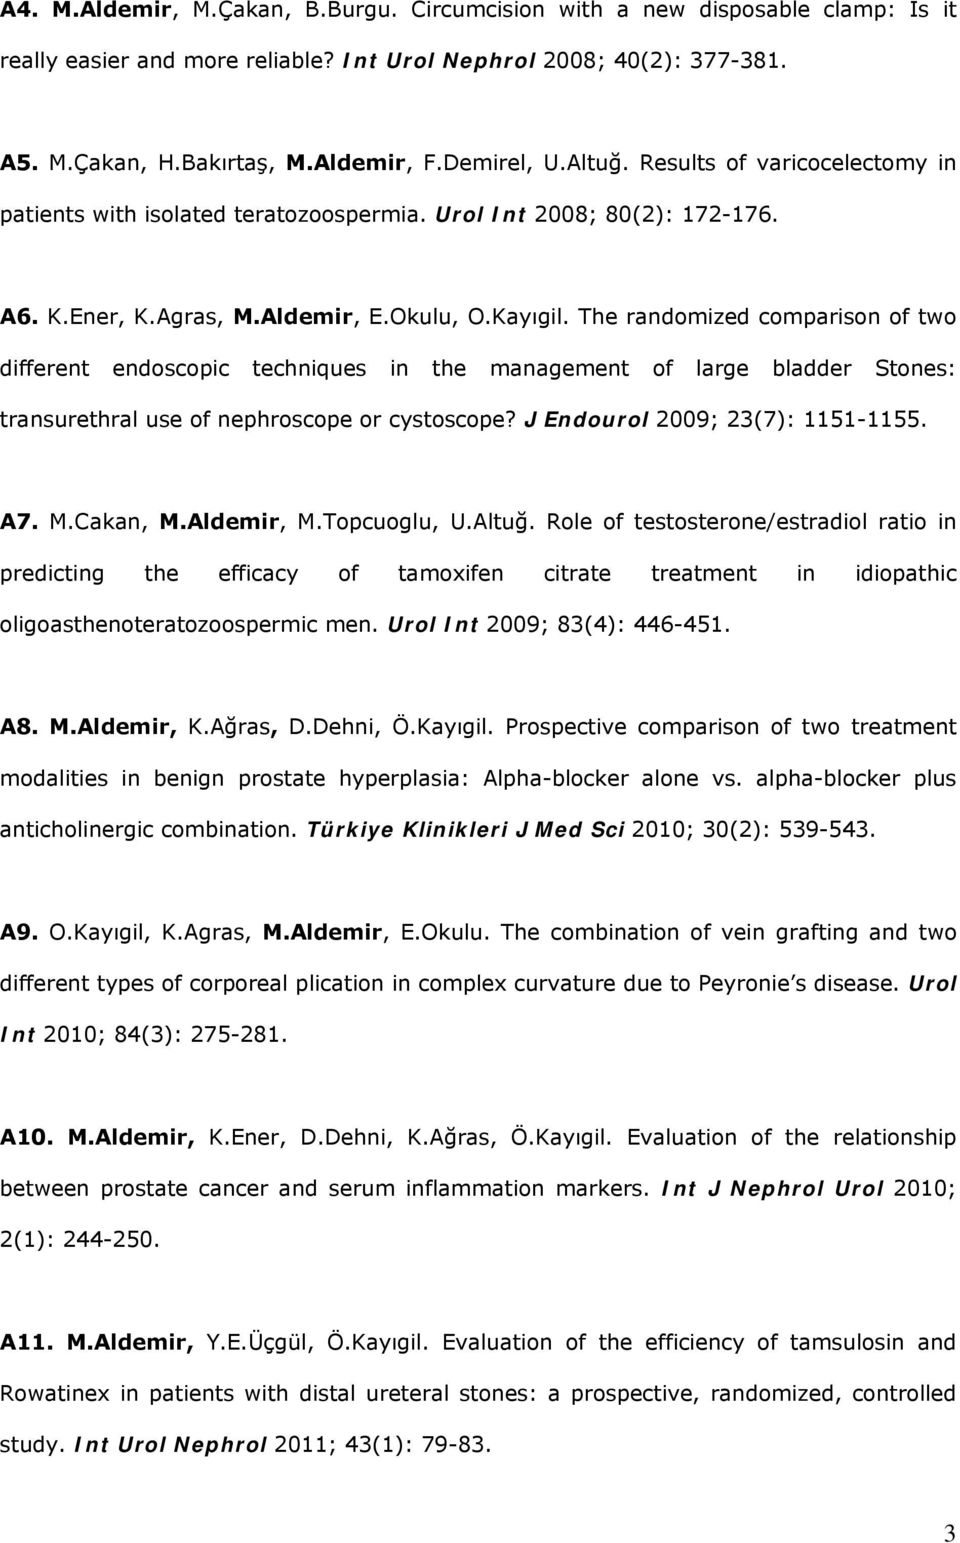 The randomized comparison of two different endoscopic techniques in the management of large bladder Stones: transurethral use of nephroscope or cystoscope? J Endourol 2009; 23(7): 1151-1155. A7. M.